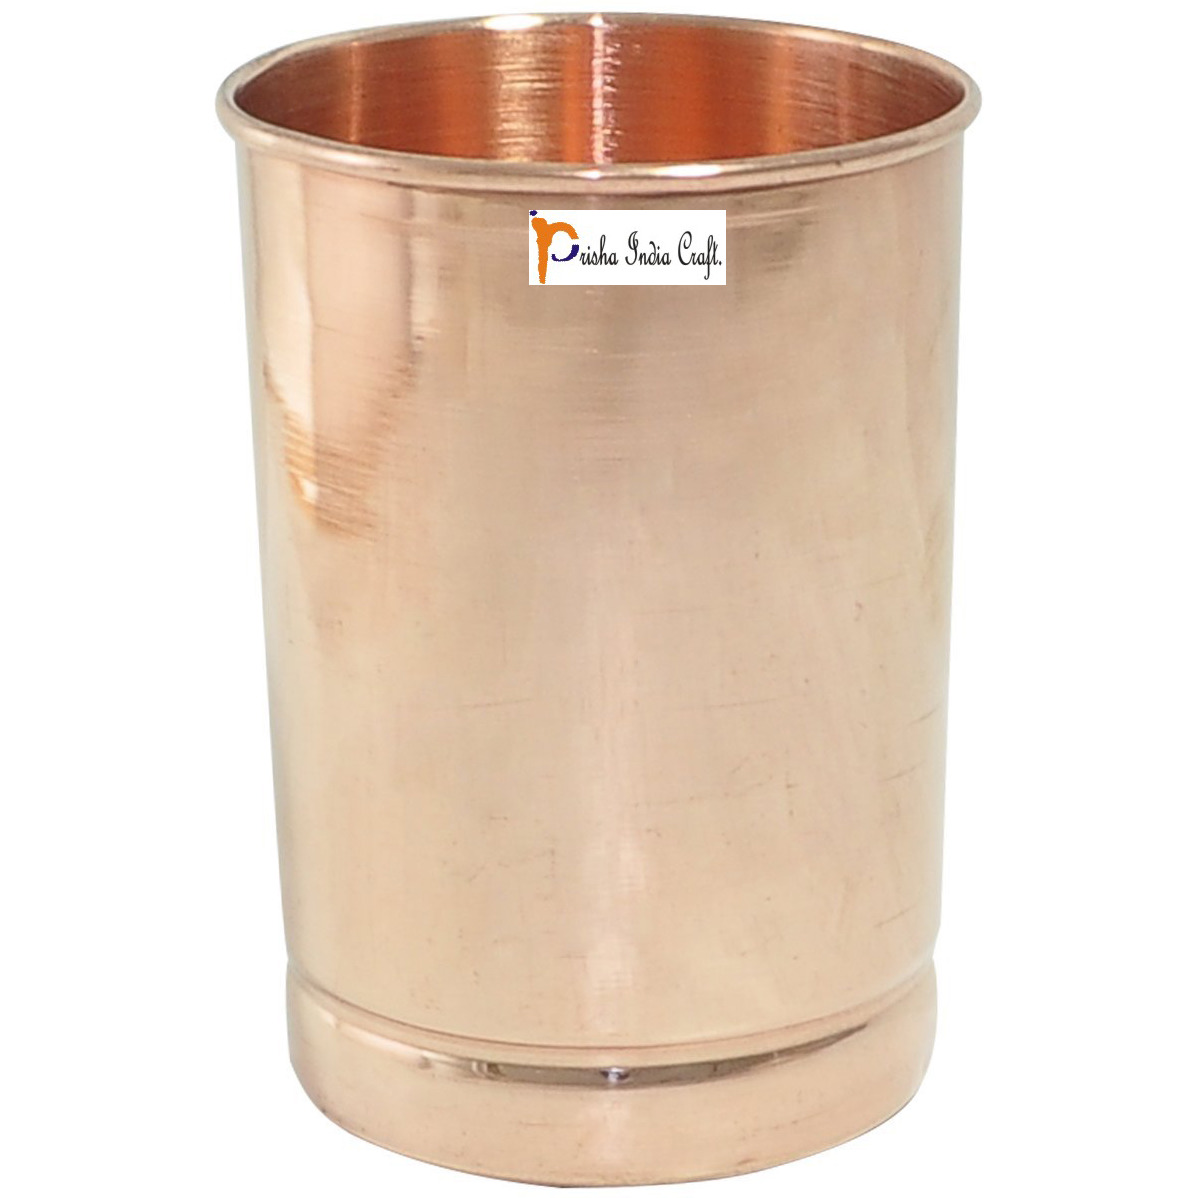 Set of 5 - Prisha India Craft B. Pure Copper Glass Cup for Water - Handmade Water Glasses - Traveller's Copper Mug for Ayurveda Benefits